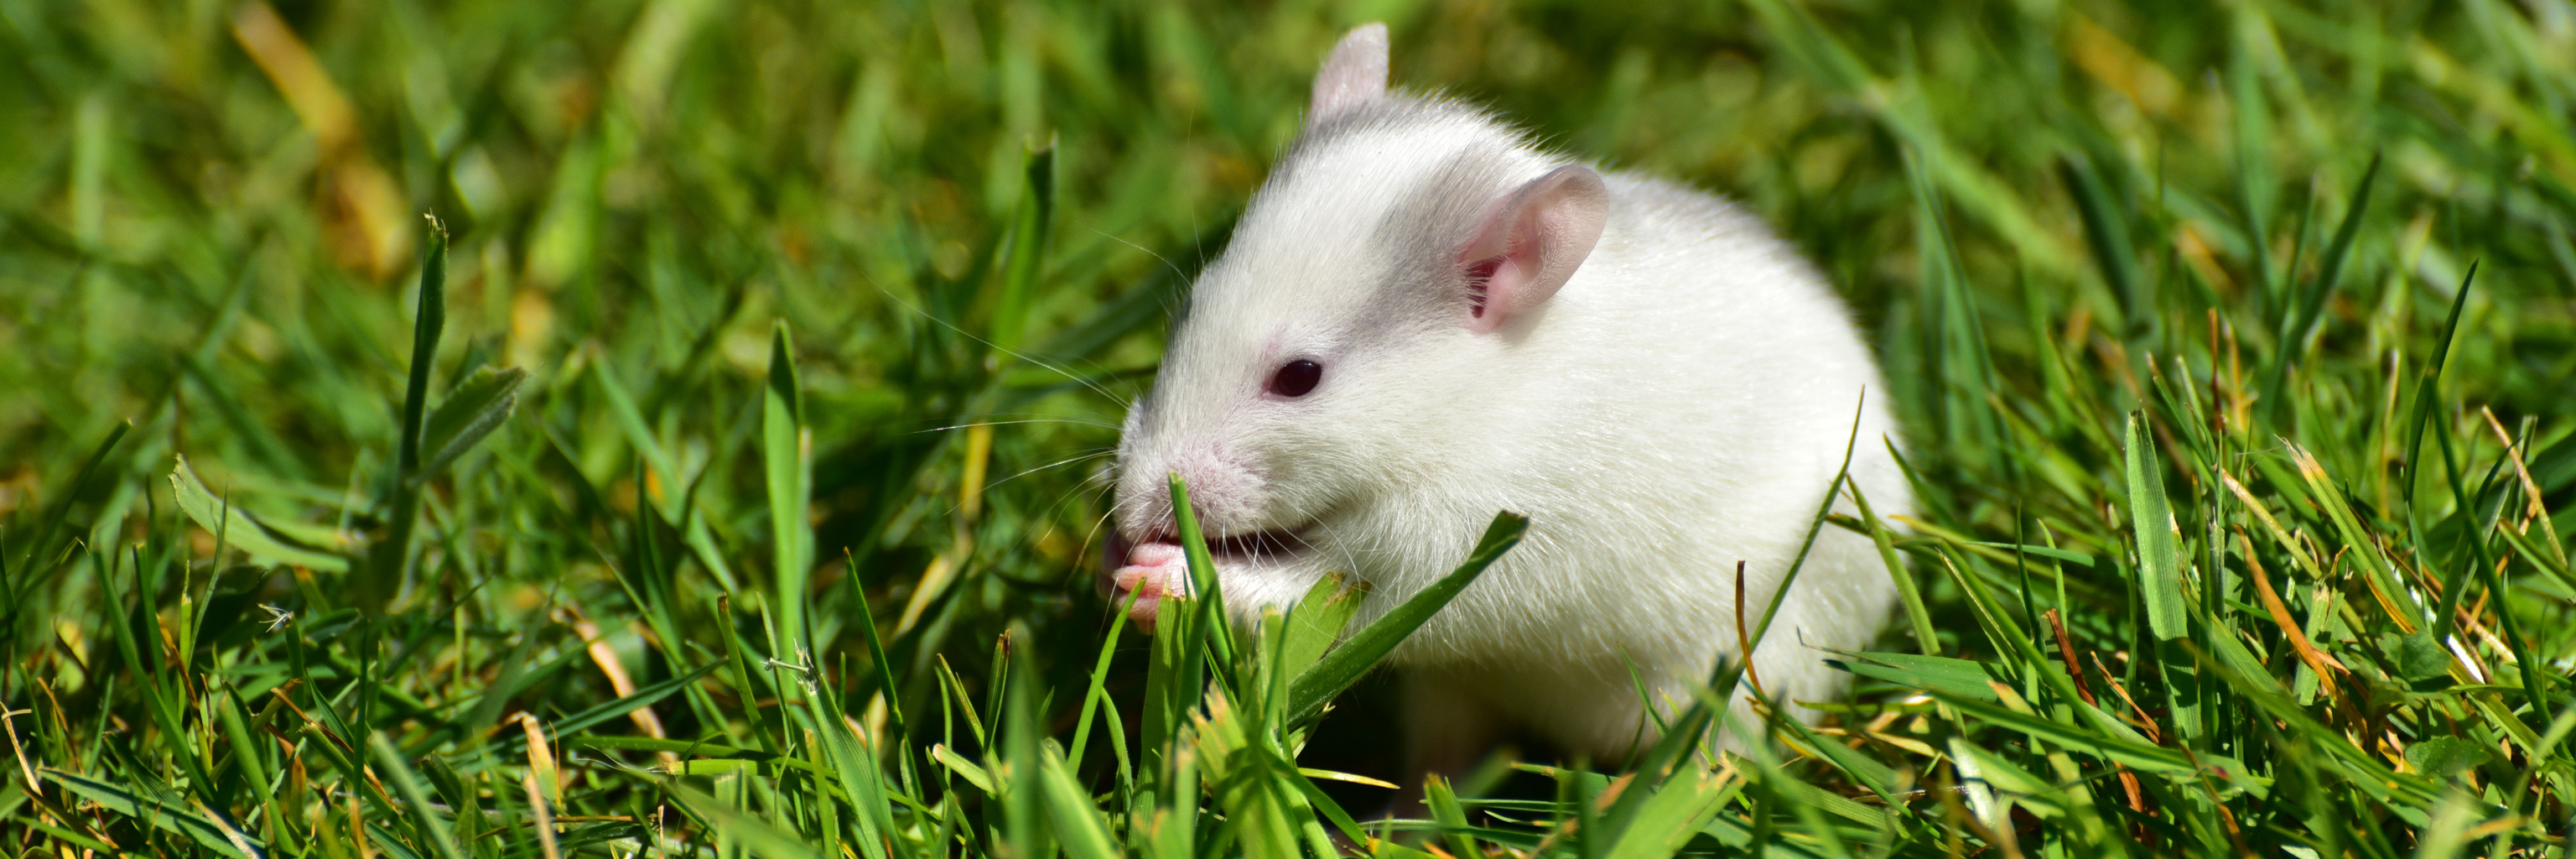 A white rat in green grass